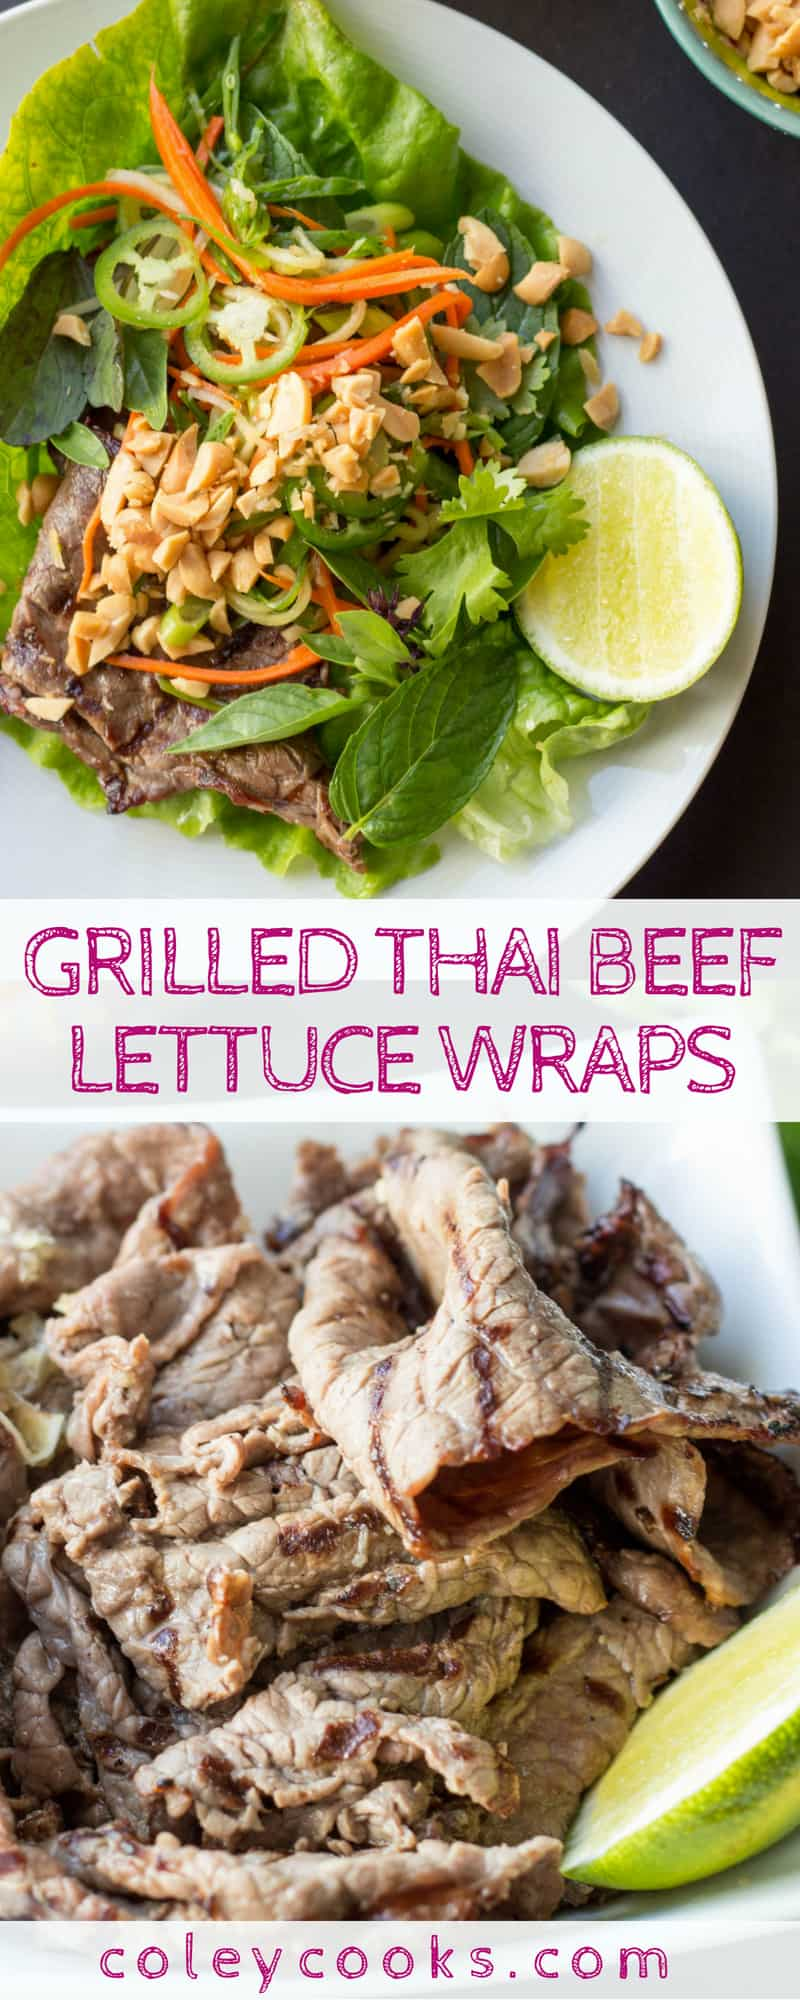 GRILLED THAI BEEF LETTUCE WRAPS | Easy, healthy grilled beef recipe! Flavorful marinated grilled beef with crunchy veggie slaw. #grilled #beef #paleo #recipe #summer #healthy #glutenfree | ColeyCooks.com